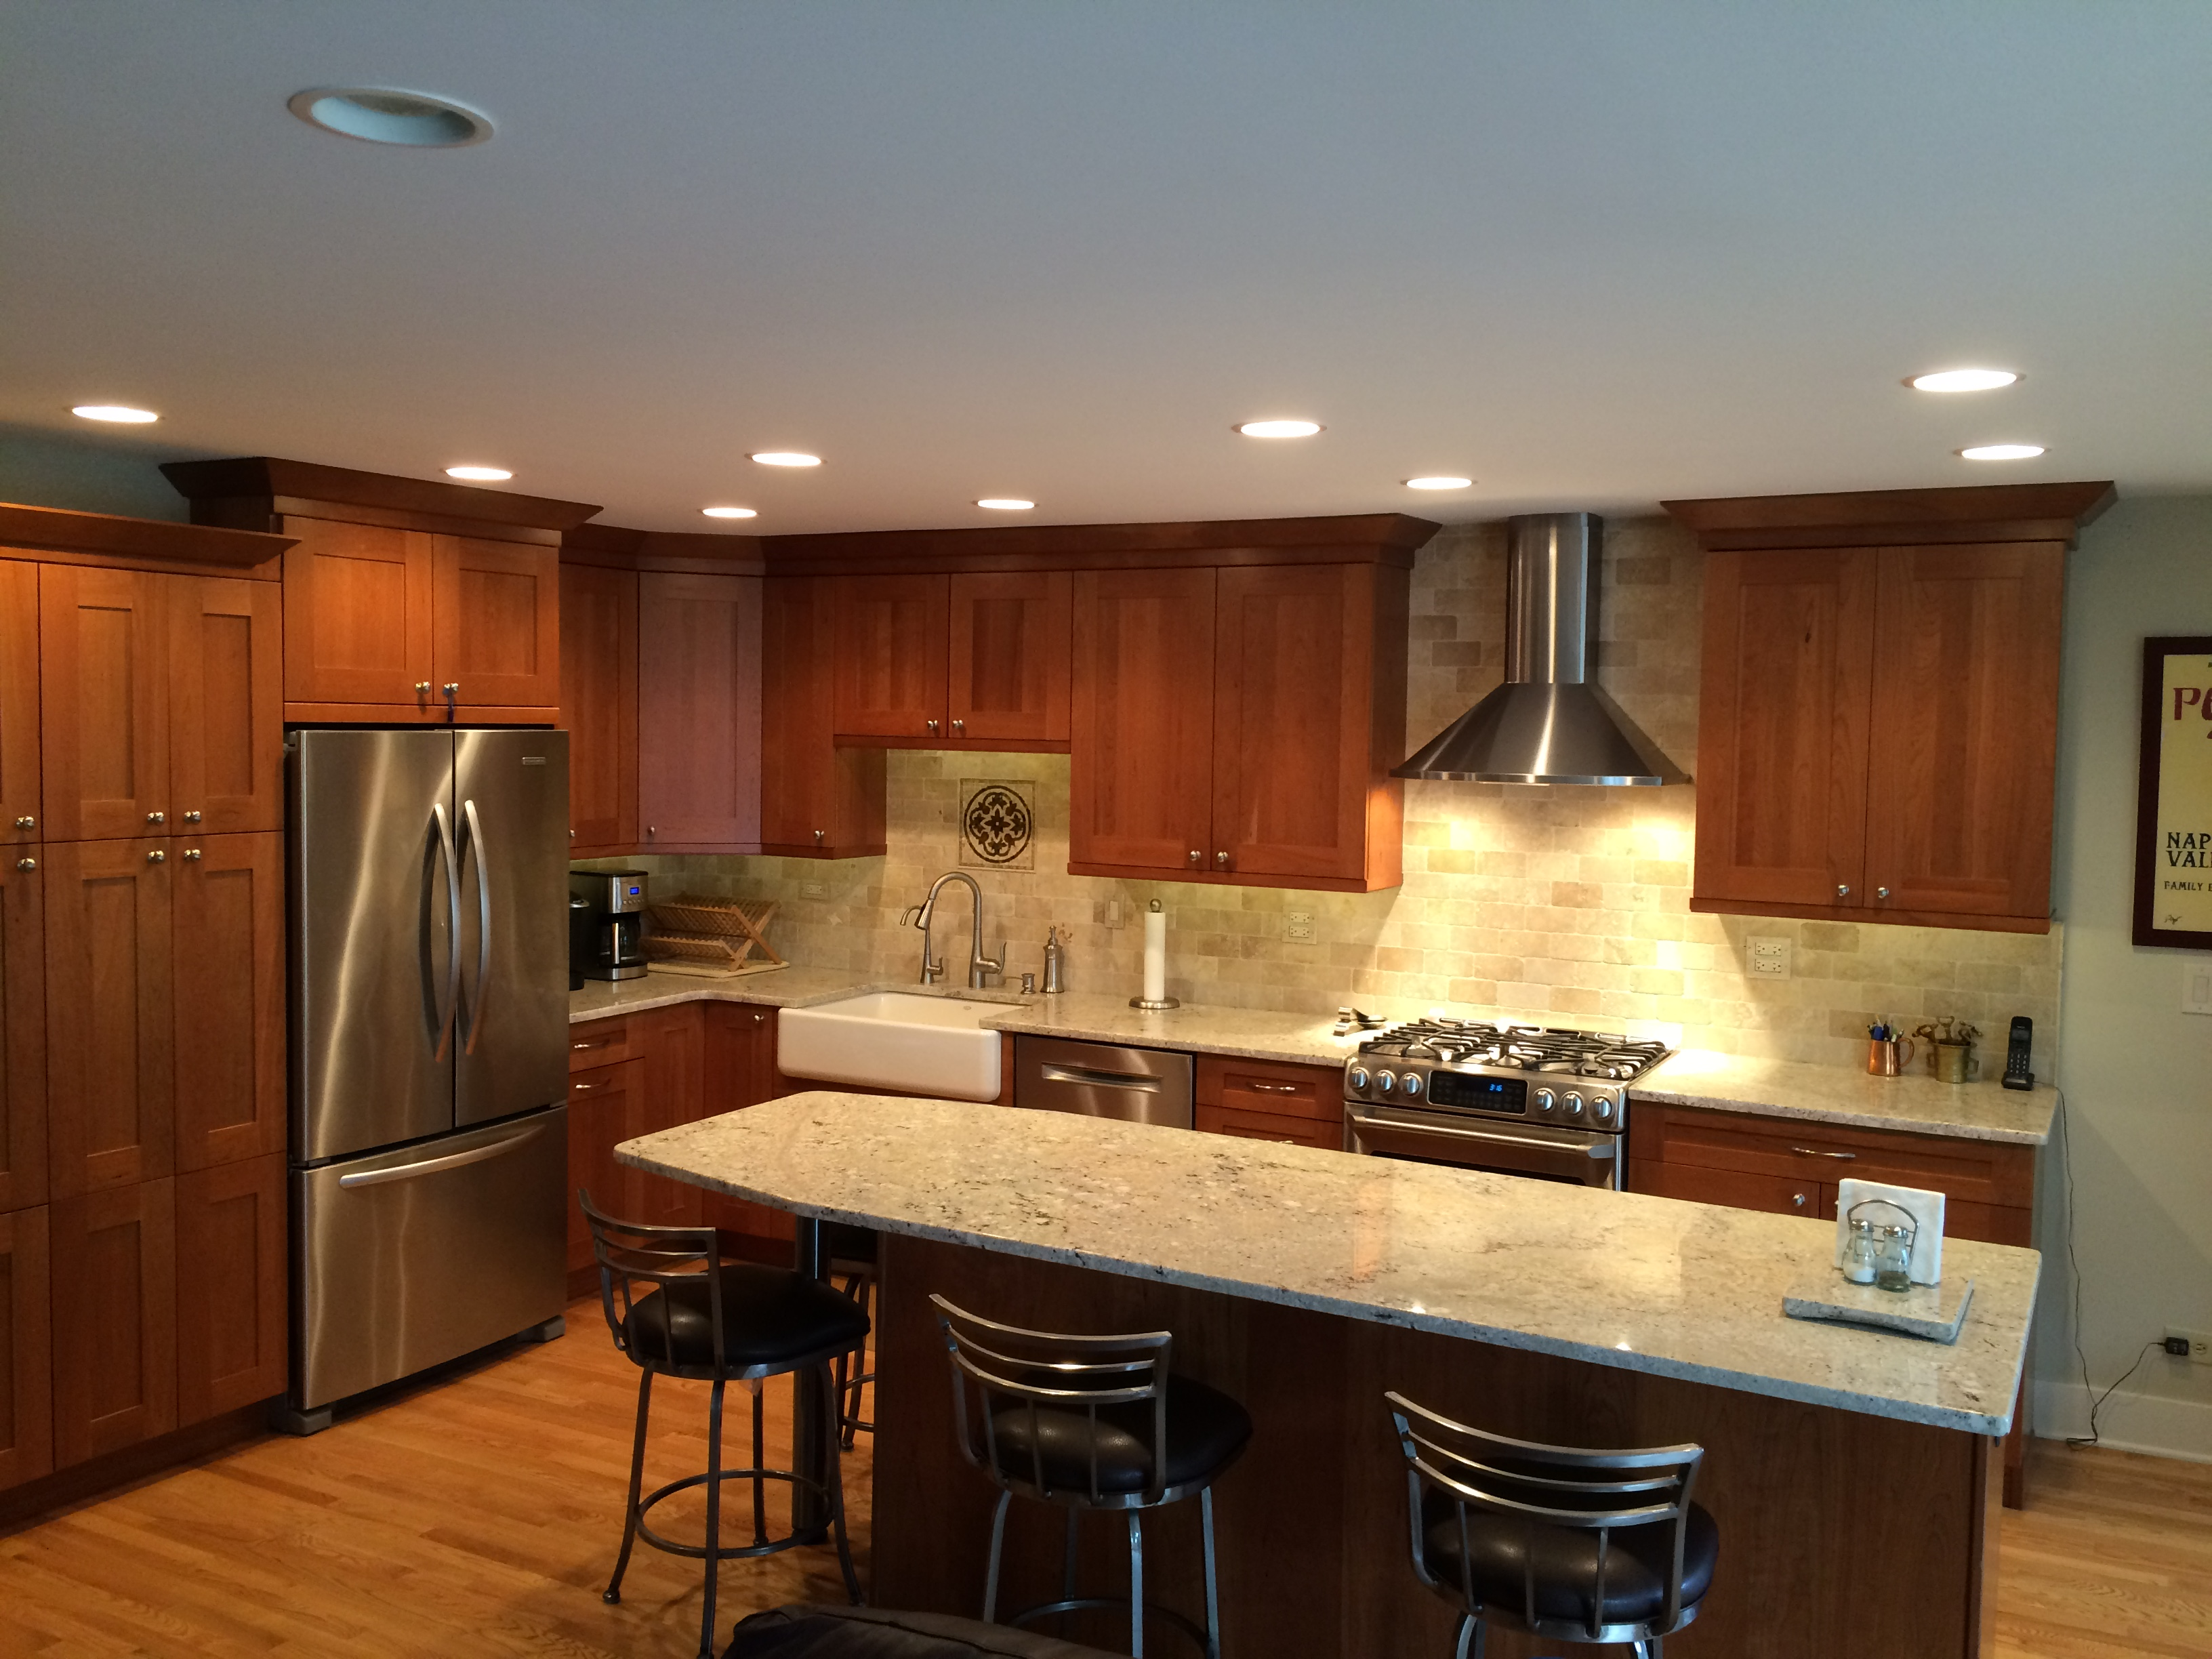 kitchen cabinets lake zurich kitchen discounters of america inc lake zurich illinois 20692